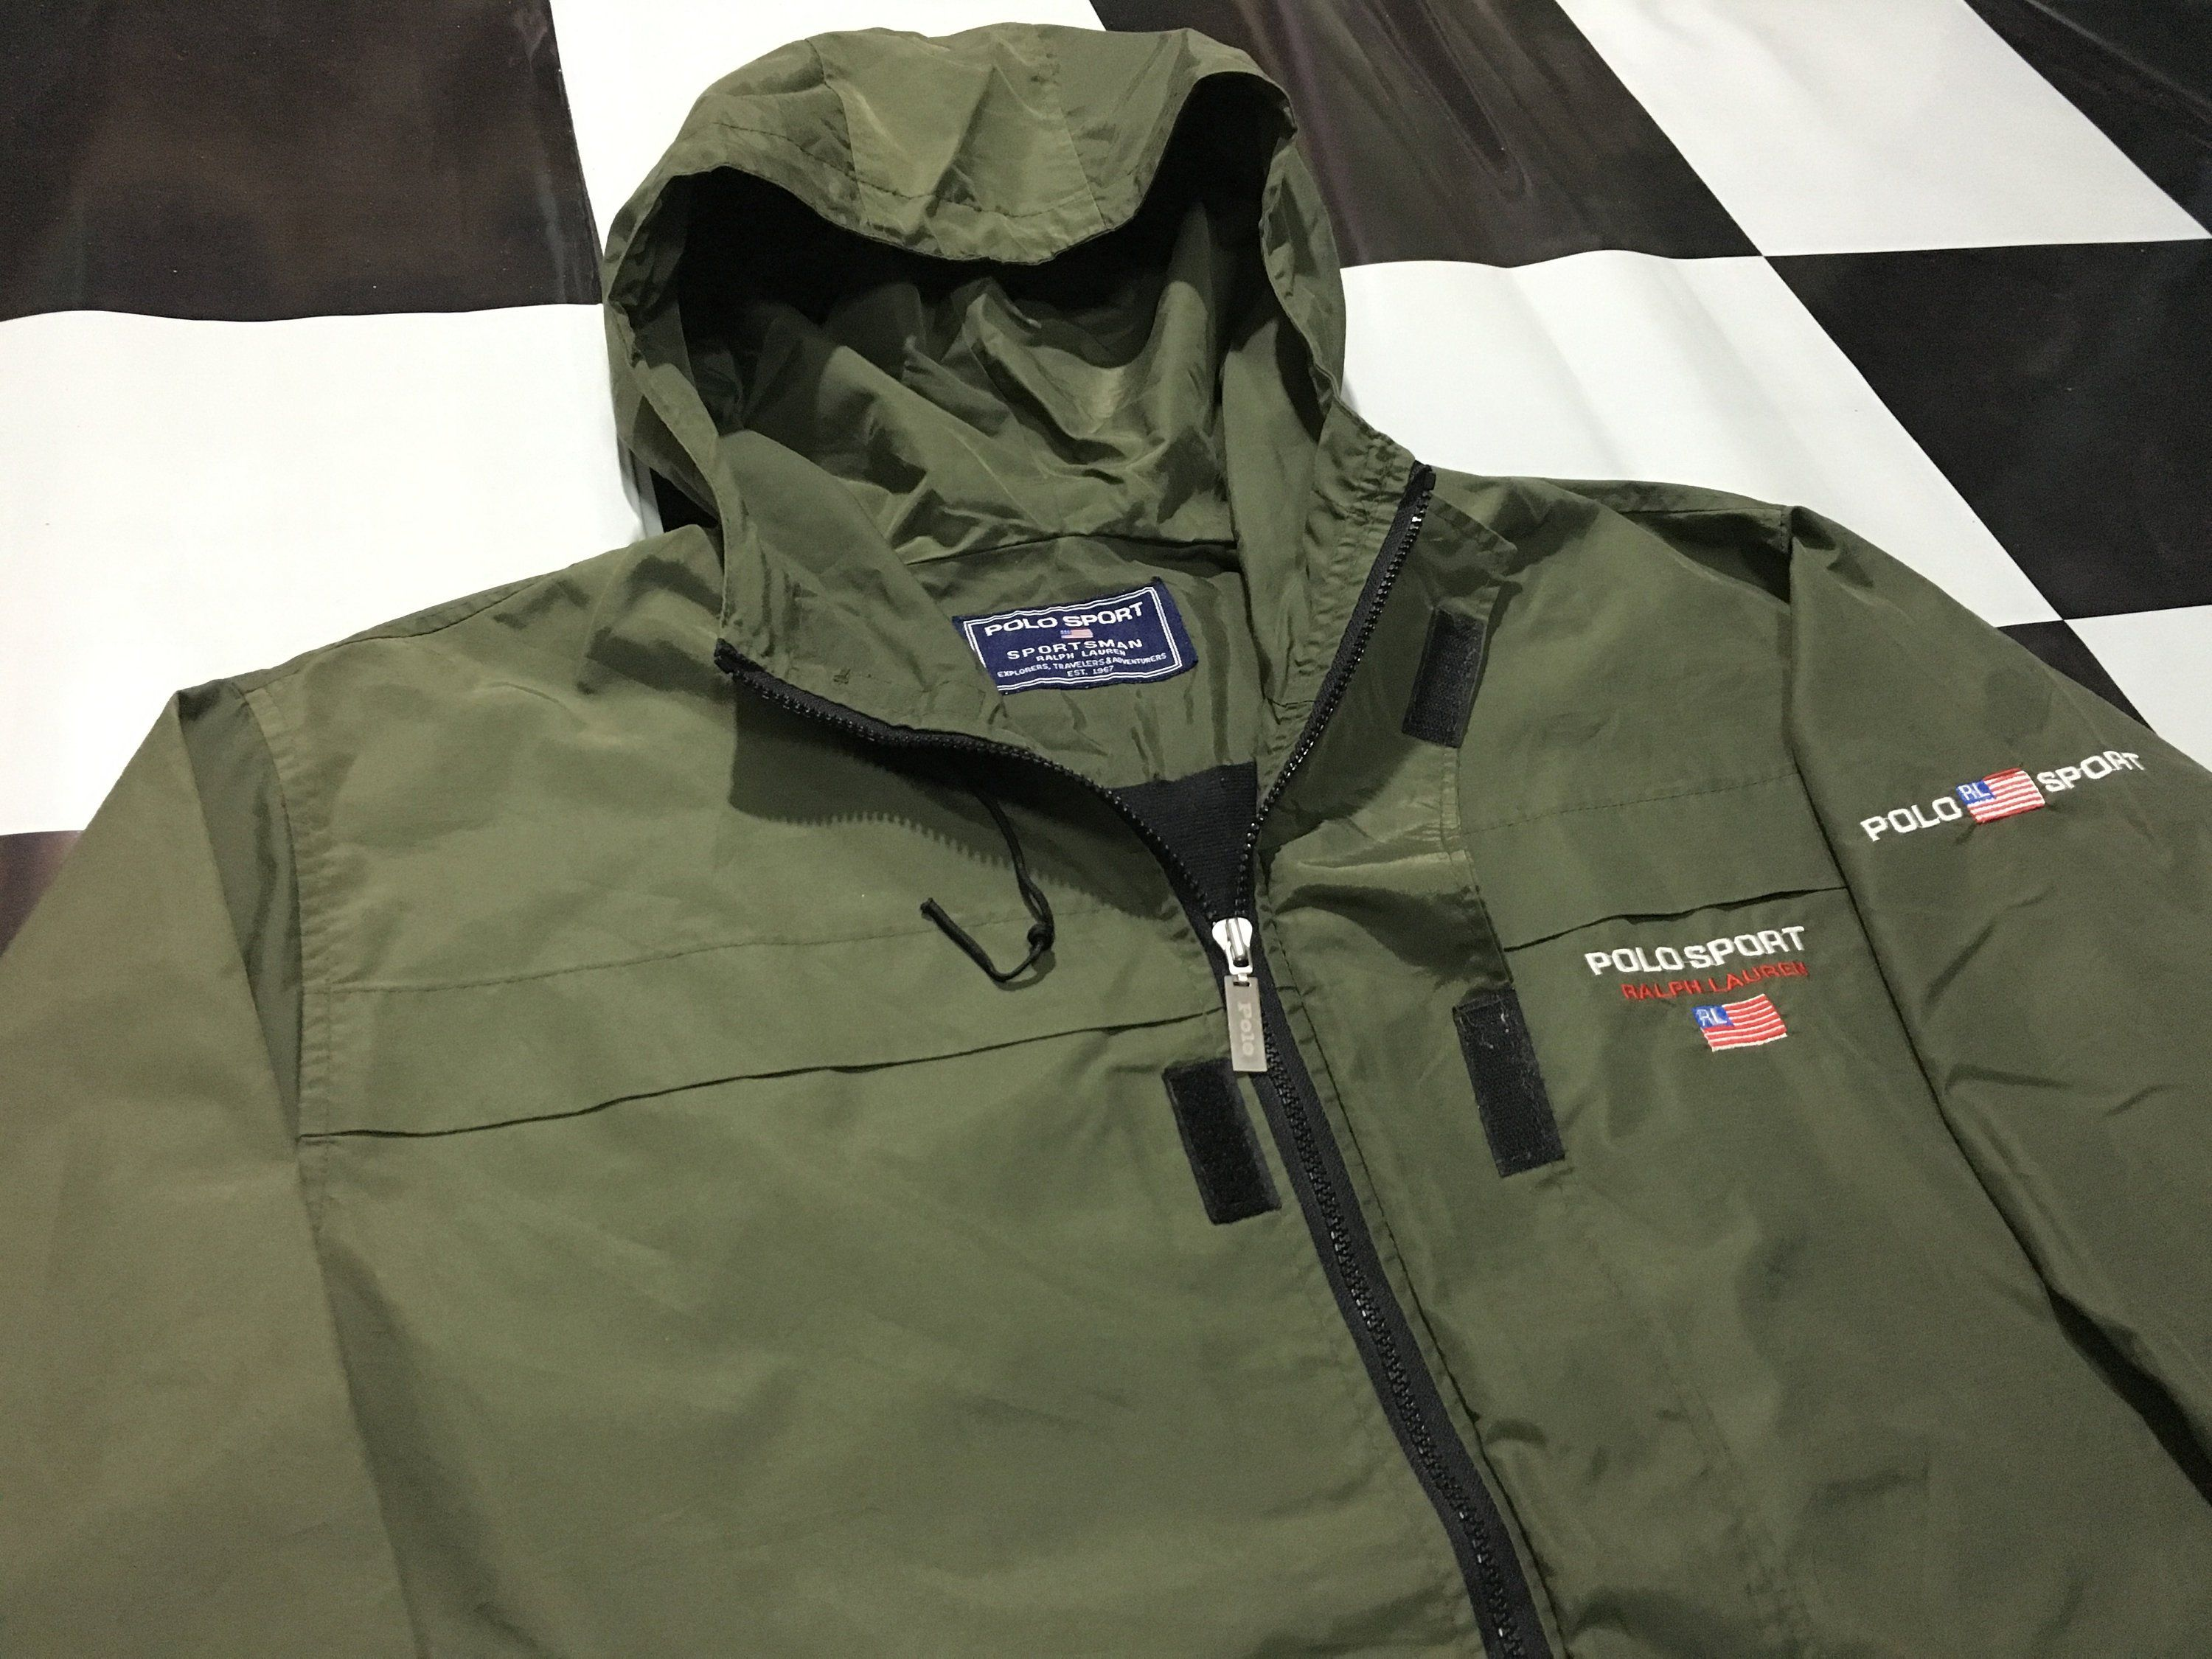 d82cdd8e1 Vintage Polo sport jacket hooded windbreaker flag logo spell out Military  Green Size XL Excellent condition Polo sportsman ralph lauren by  AlivevintageShop ...